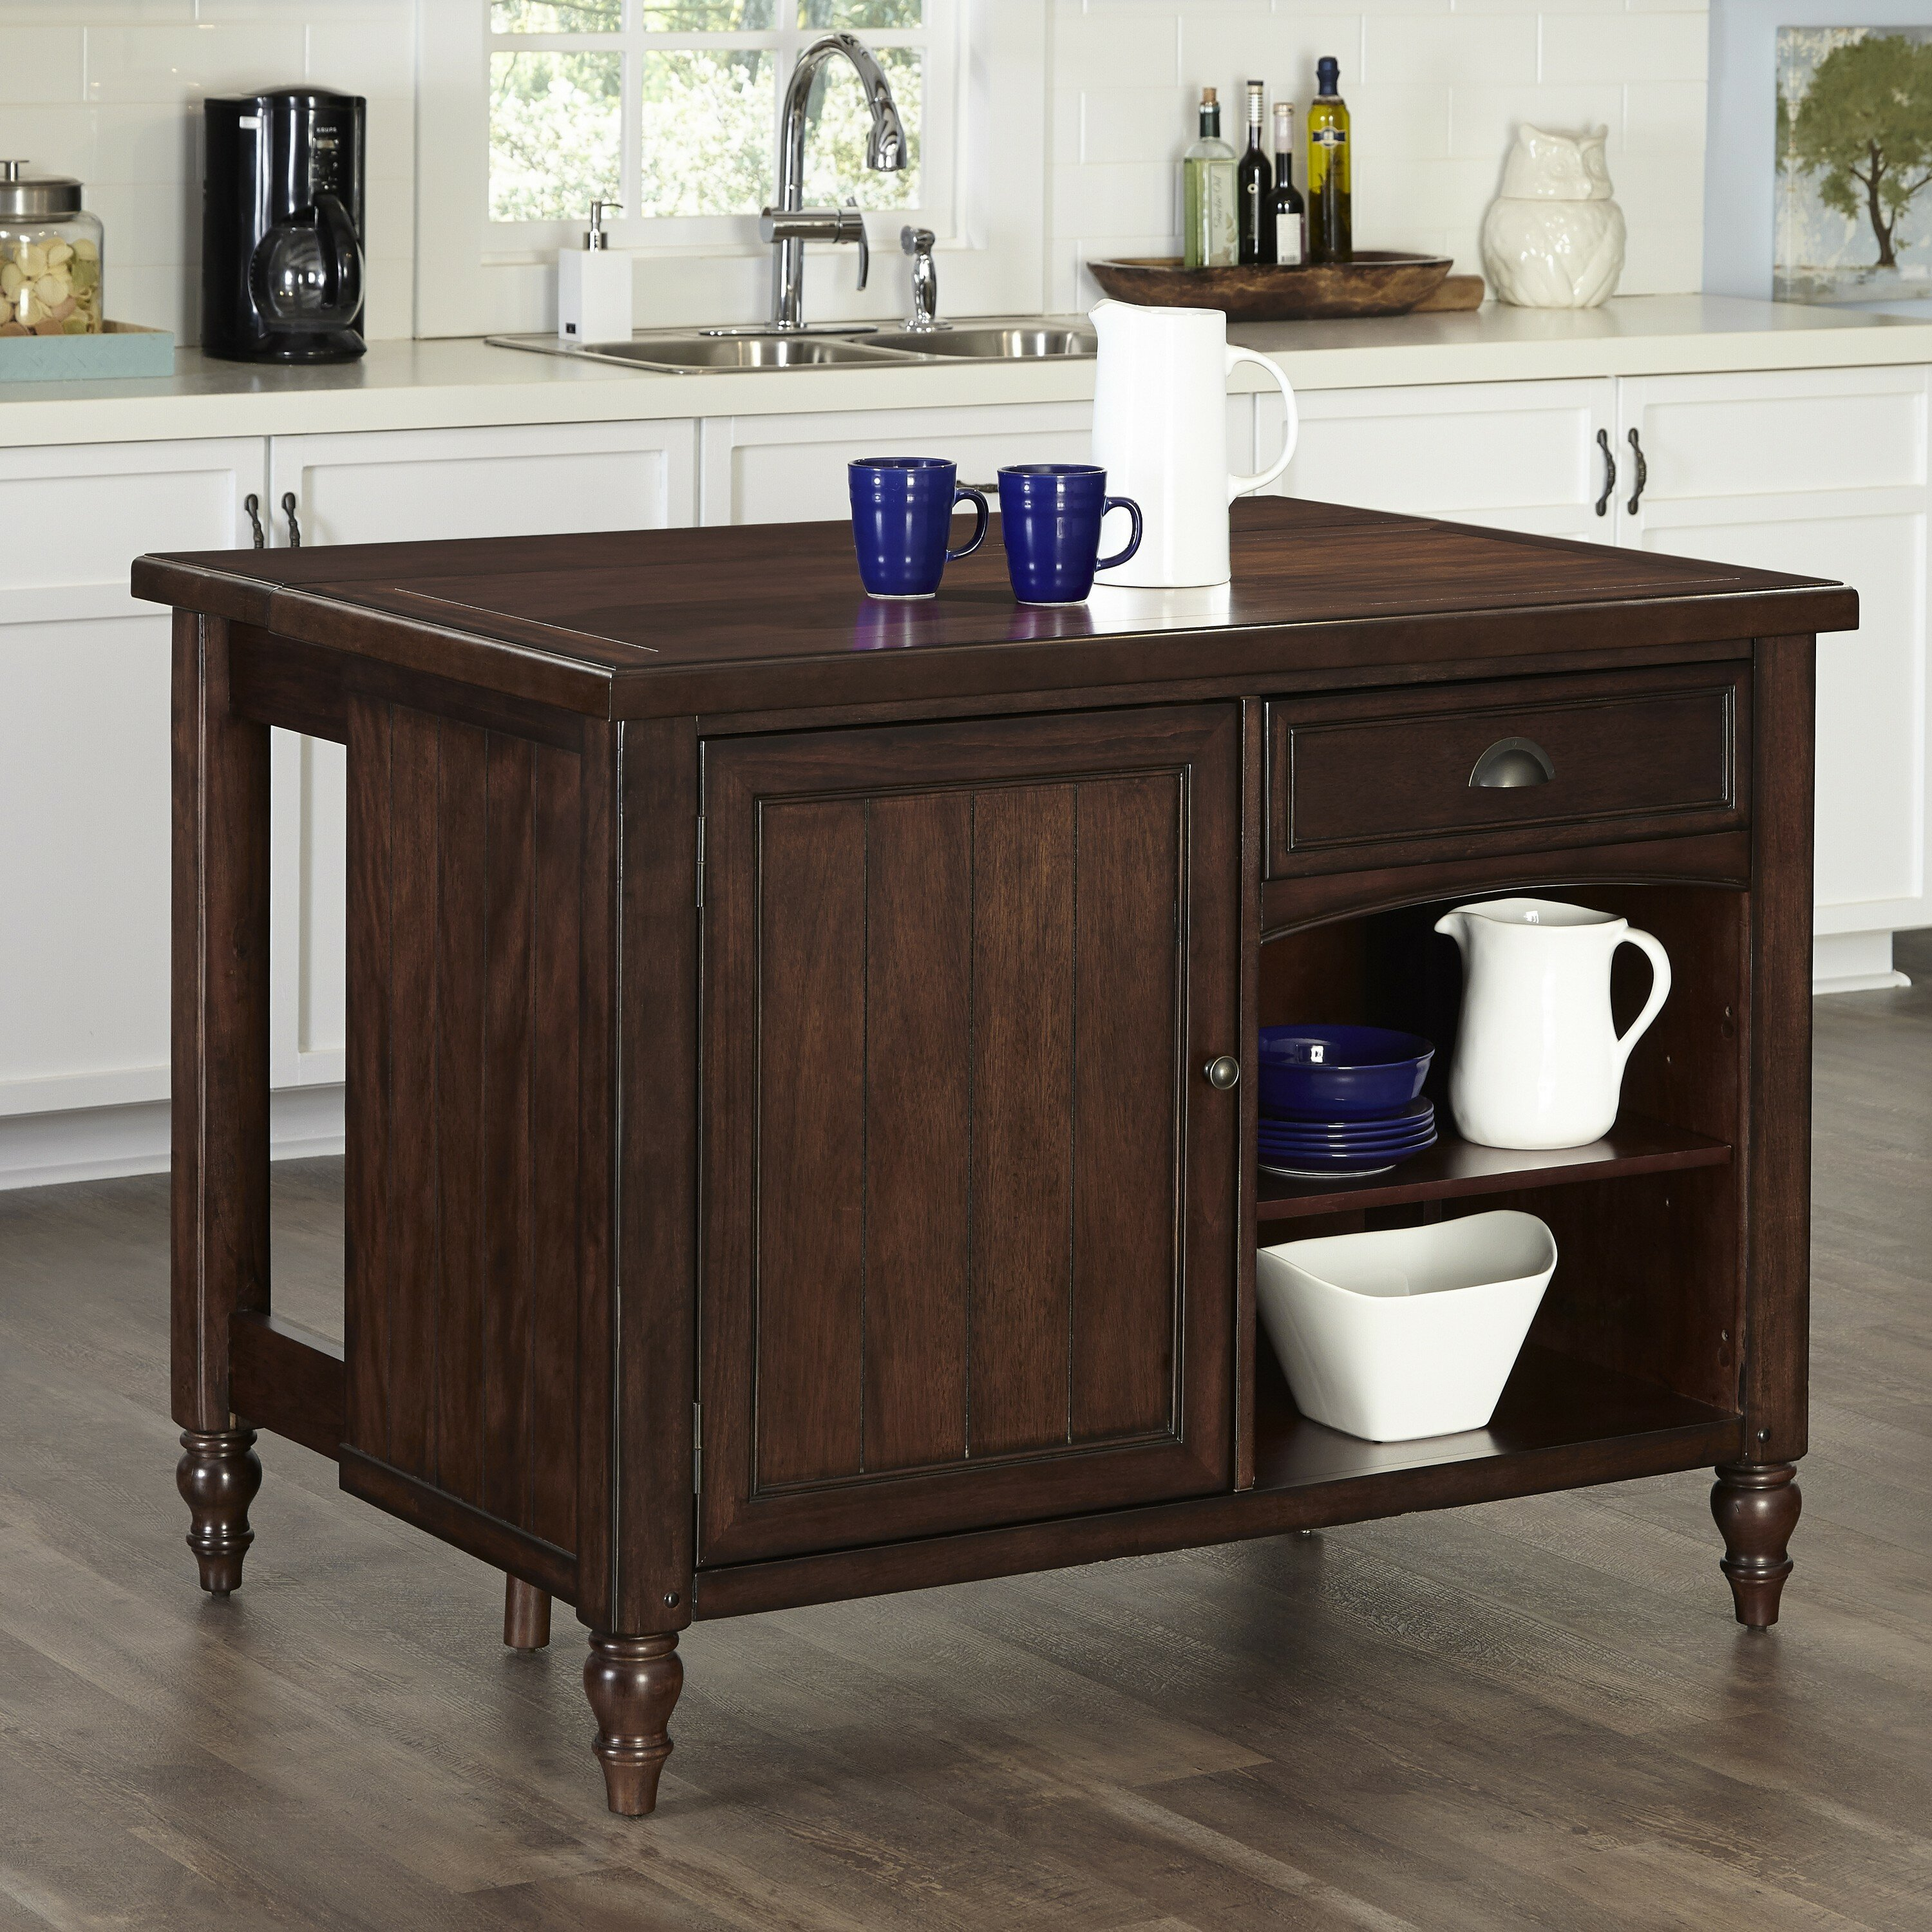 Kitchen Island Furniture: Bay Isle Home Canouan Kitchen Island & Reviews